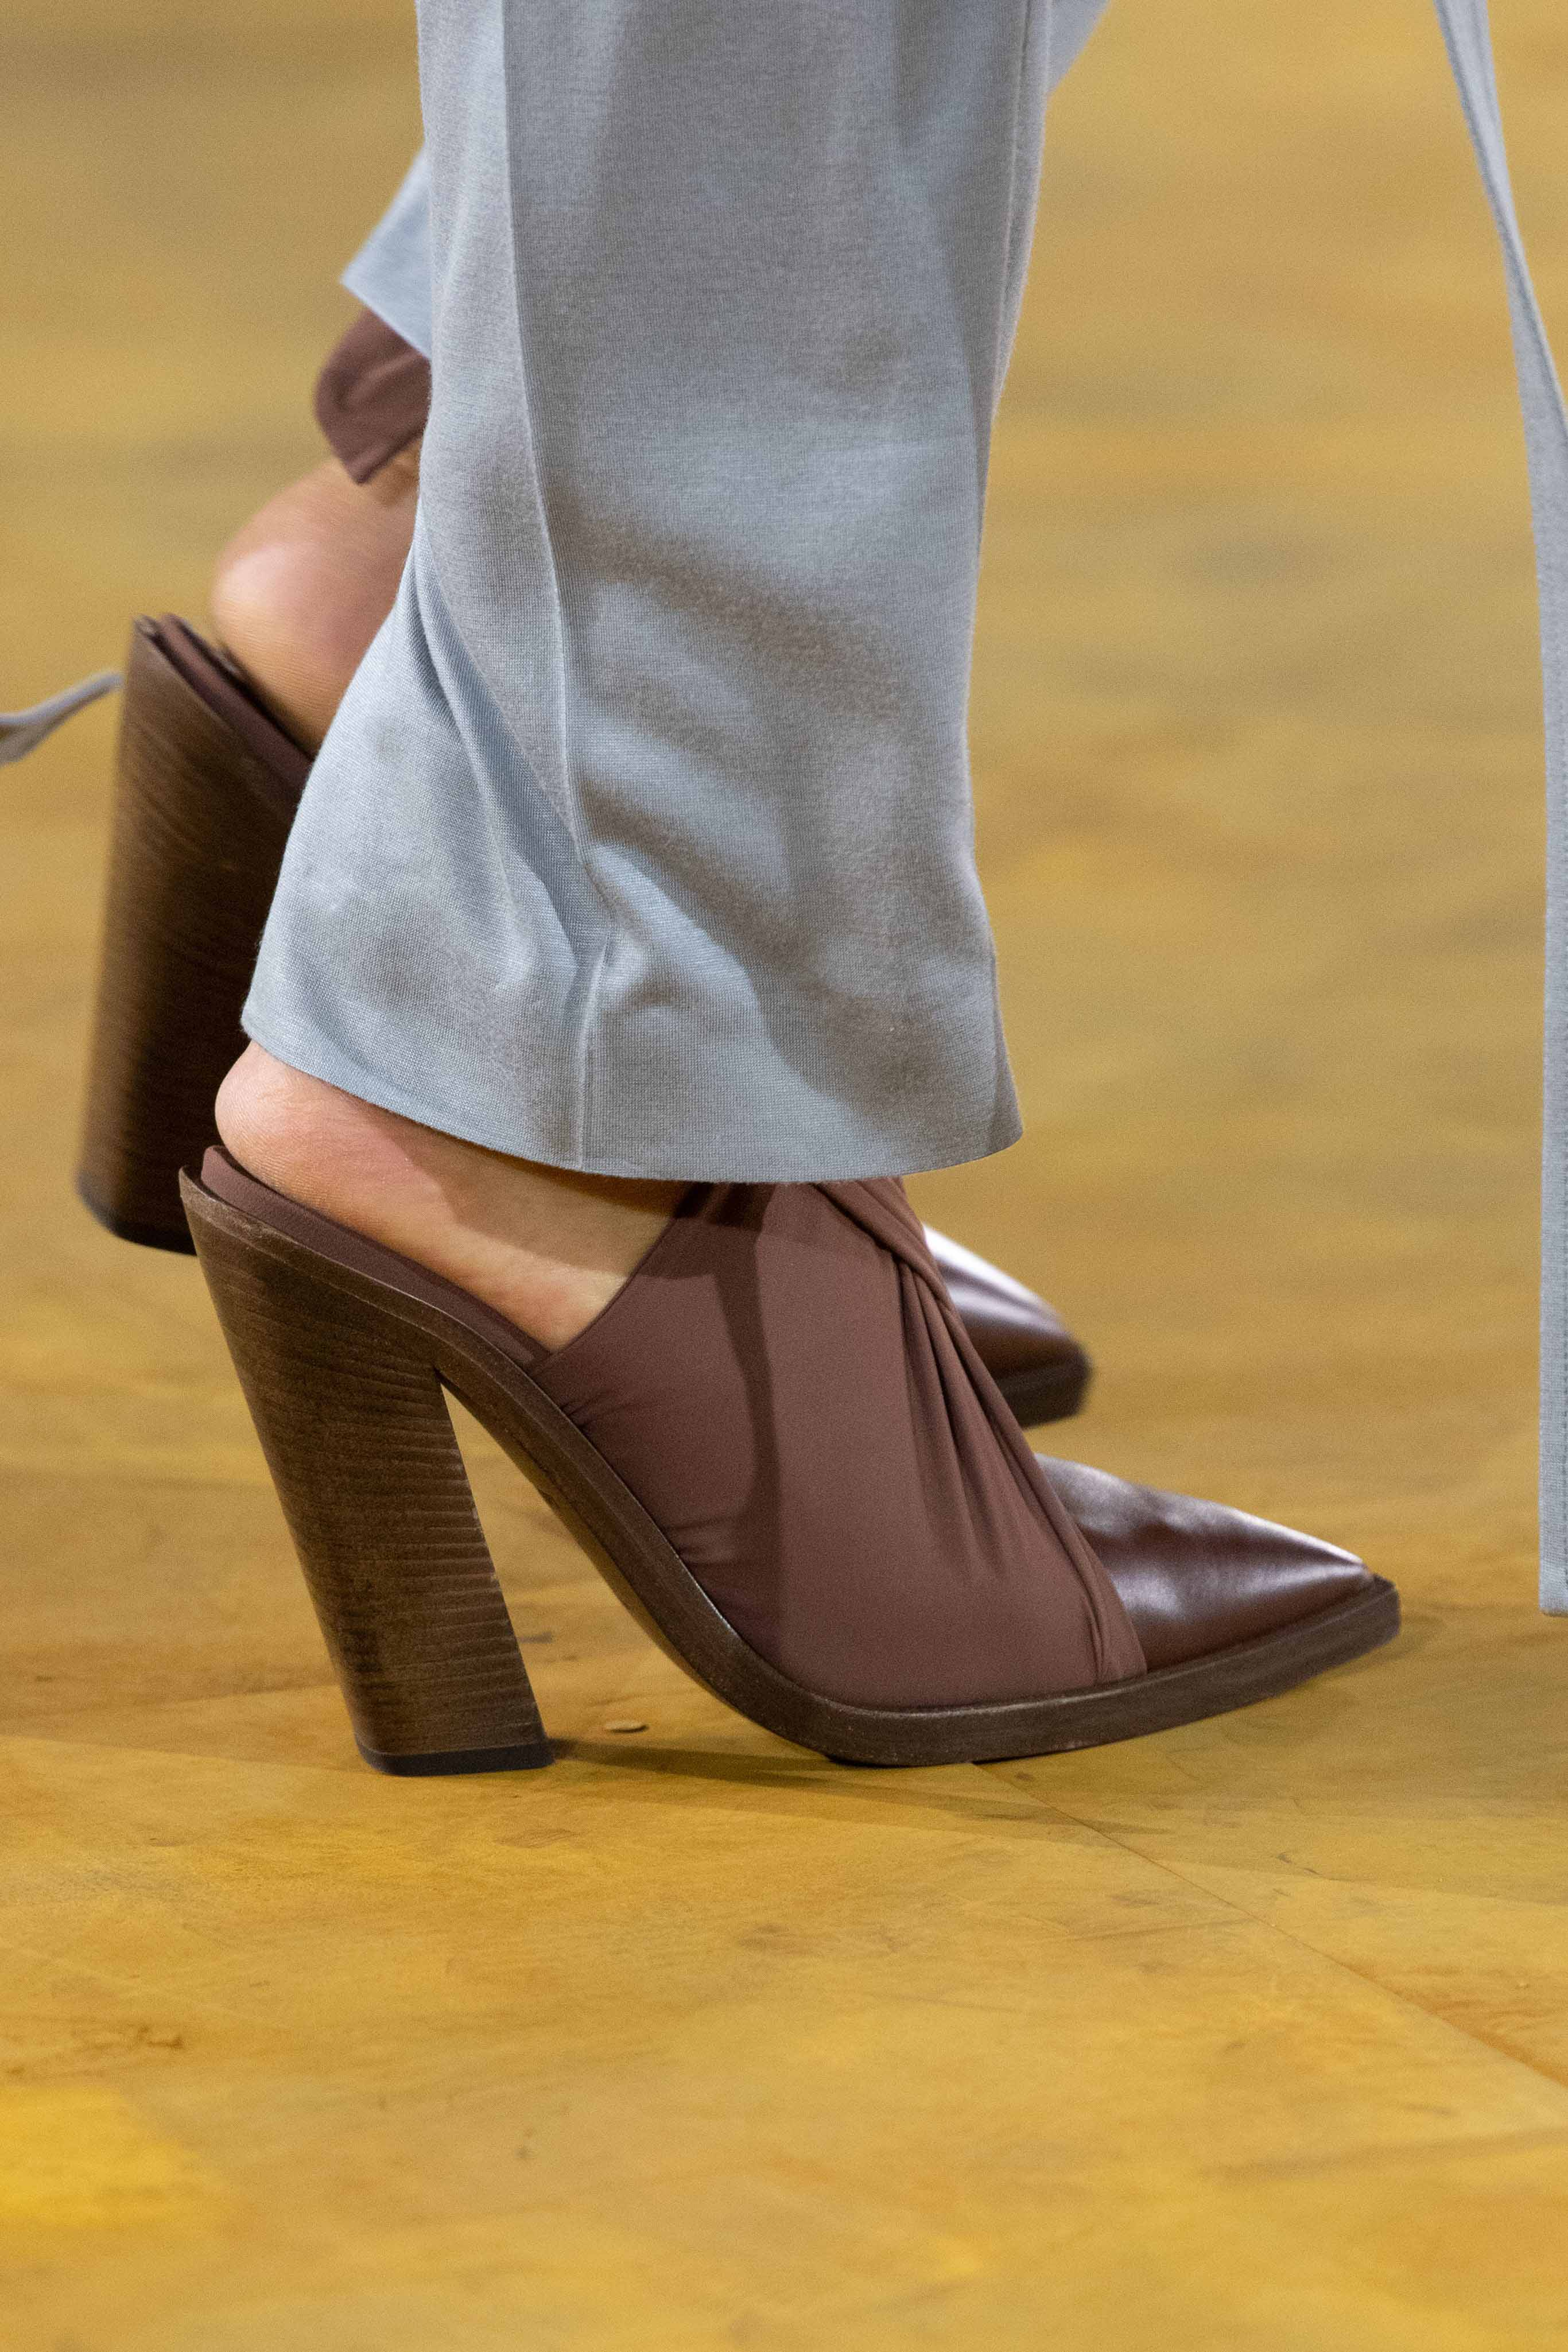 Burberry Spring Summer 2020 SS2020 trends runway coverage Ready To Wear Vogue shoes